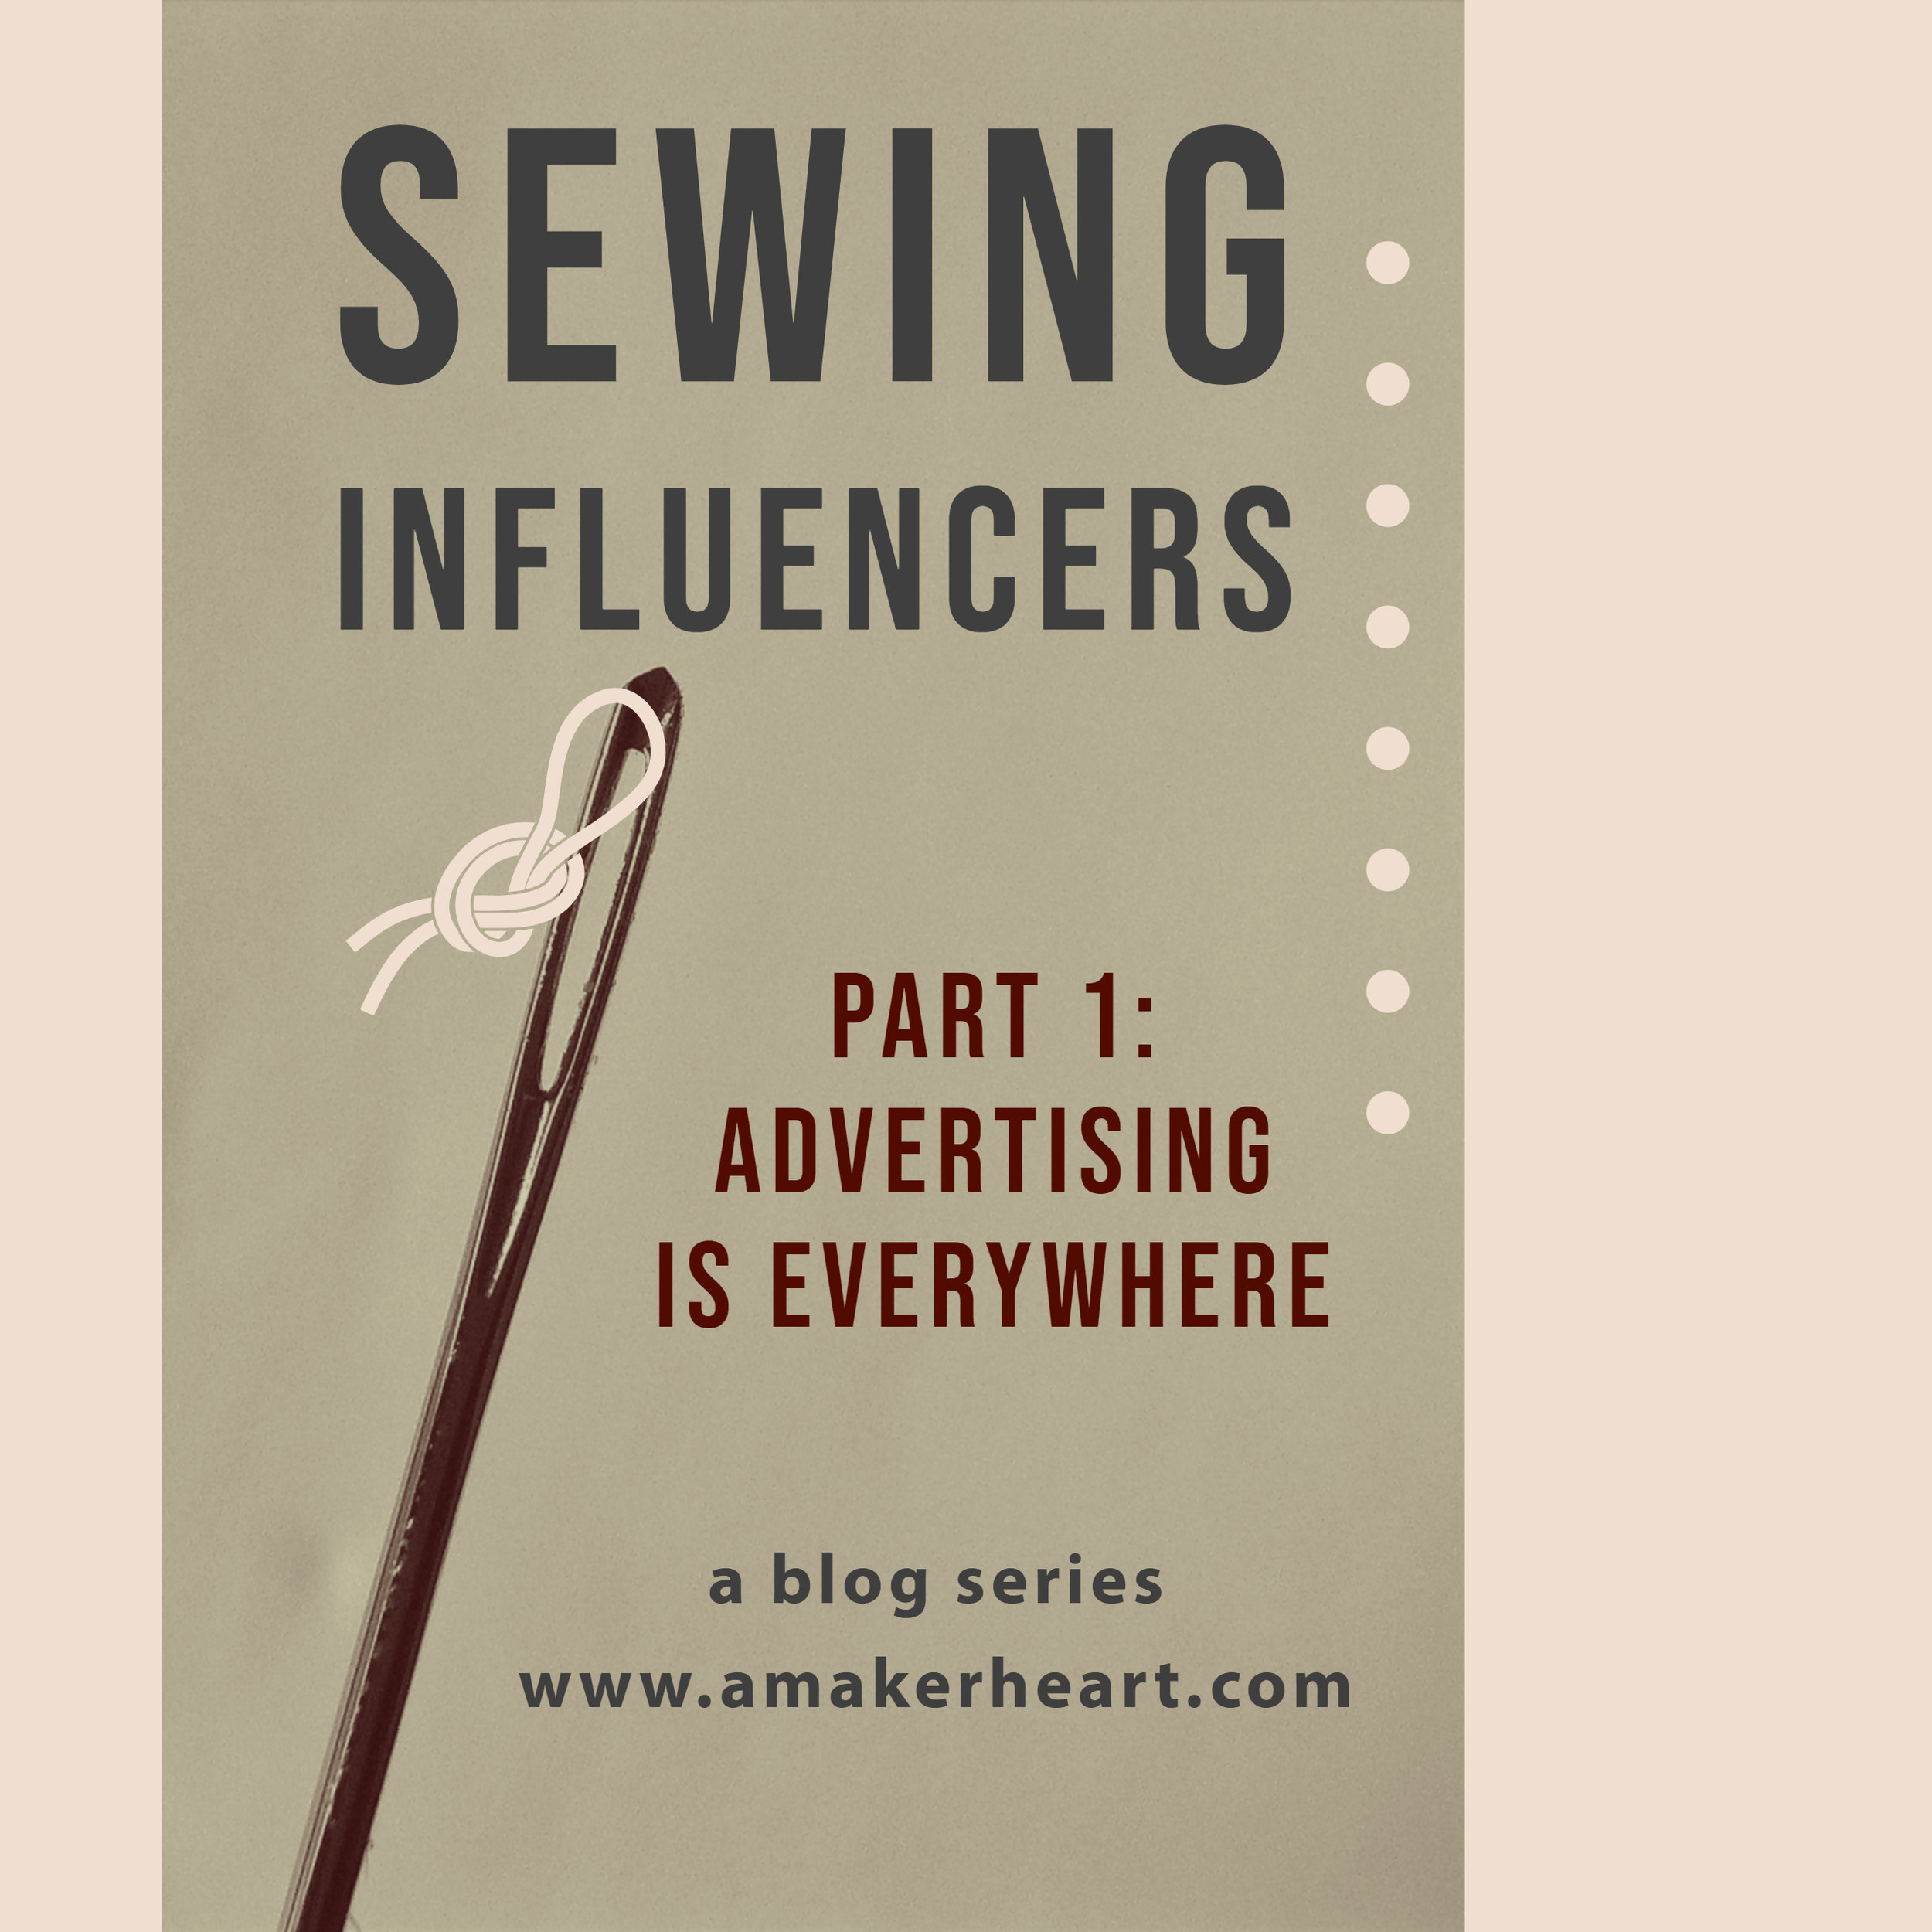 Sewing Influencers Part 1.jpg